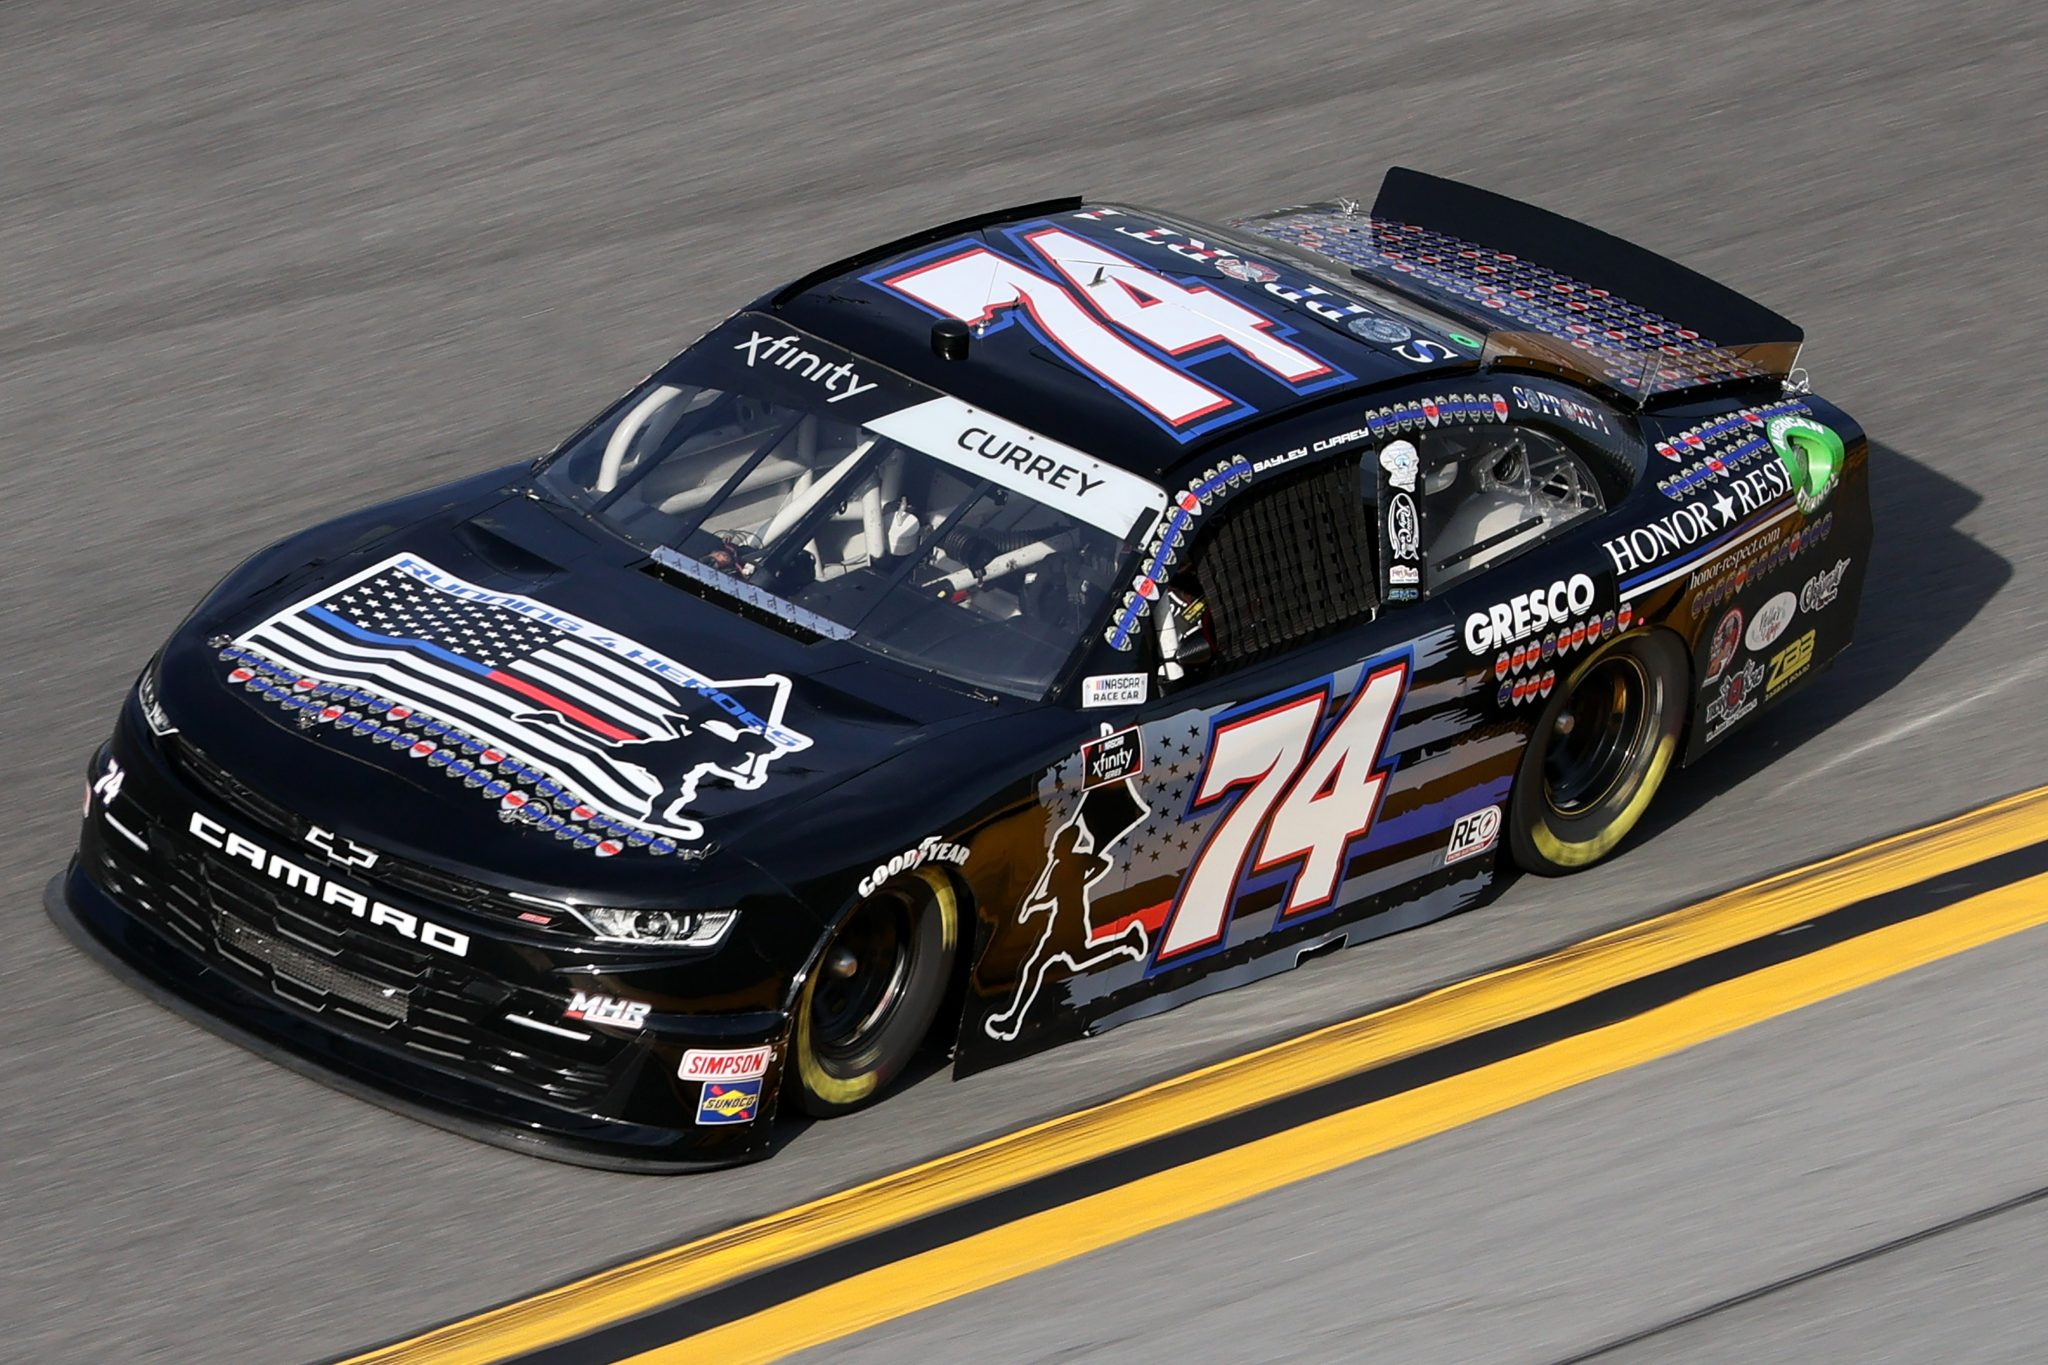 DAYTONA BEACH, FLORIDA - FEBRUARY 12: Bayley Currey, driver of the #74 Running 4 Heroes Chevrolet, practices for the NASCAR Xfinity Series Beef. It's What's For Dinner. 300 at Daytona International Speedway on February 12, 2021 in Daytona Beach, Florida. (Photo by James Gilbert/Getty Images) | Getty Images